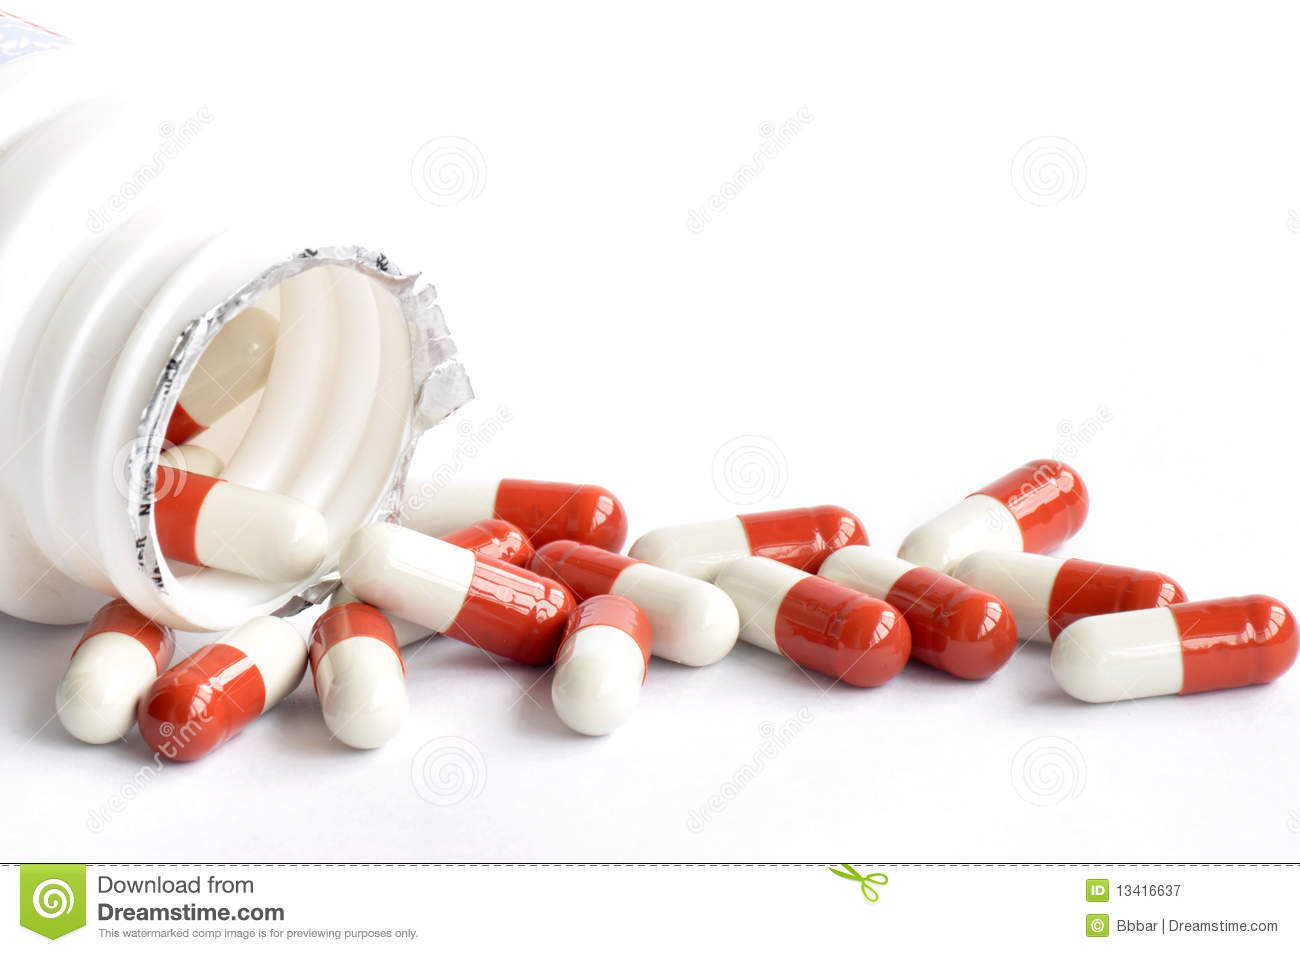 Medicine Capsules Royalty Free Stock Photography - Image: 13416637